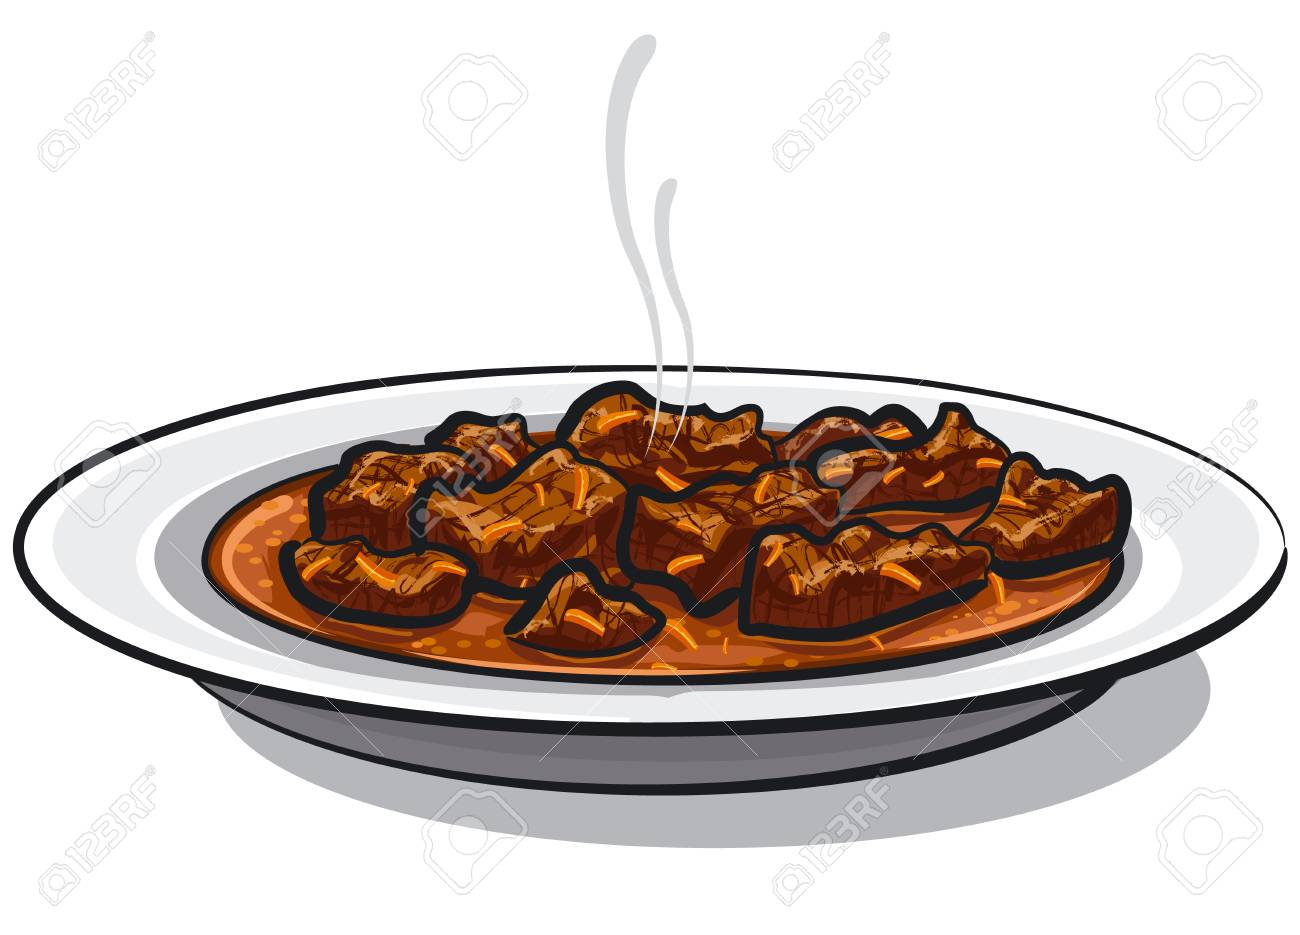 Illustration of traditional goulash meat dish in plate. - 100817448